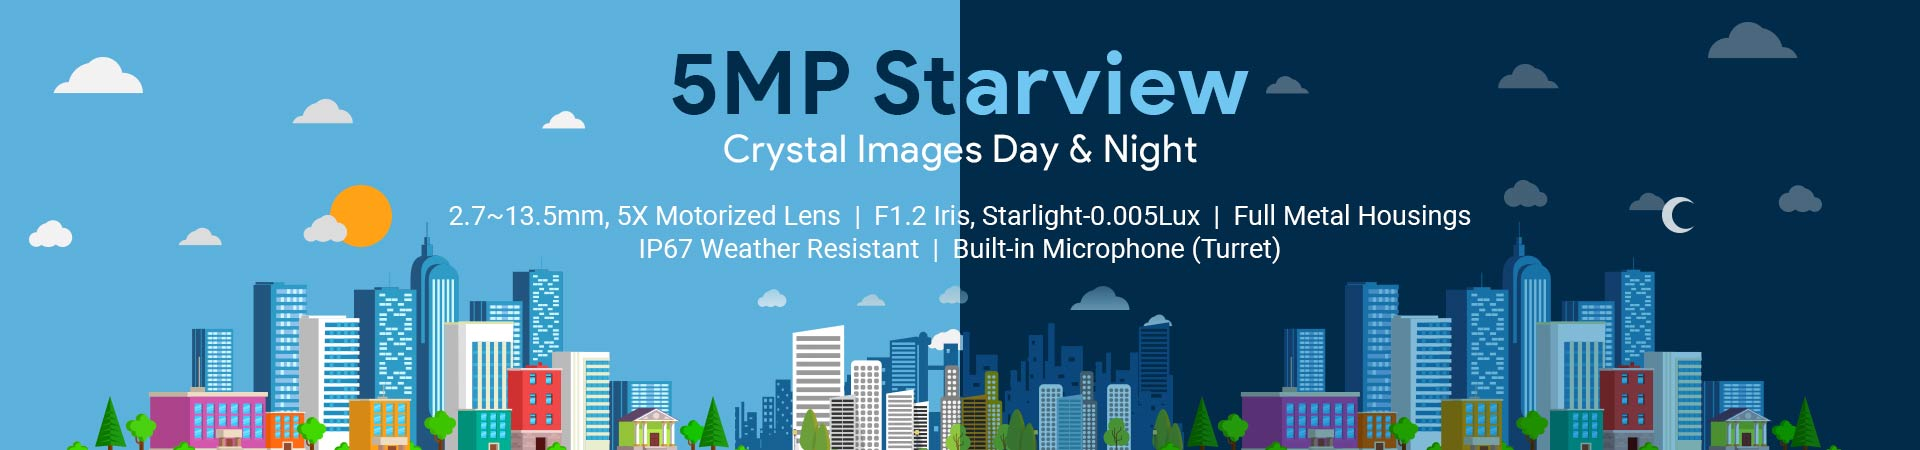 5MP Starview Products